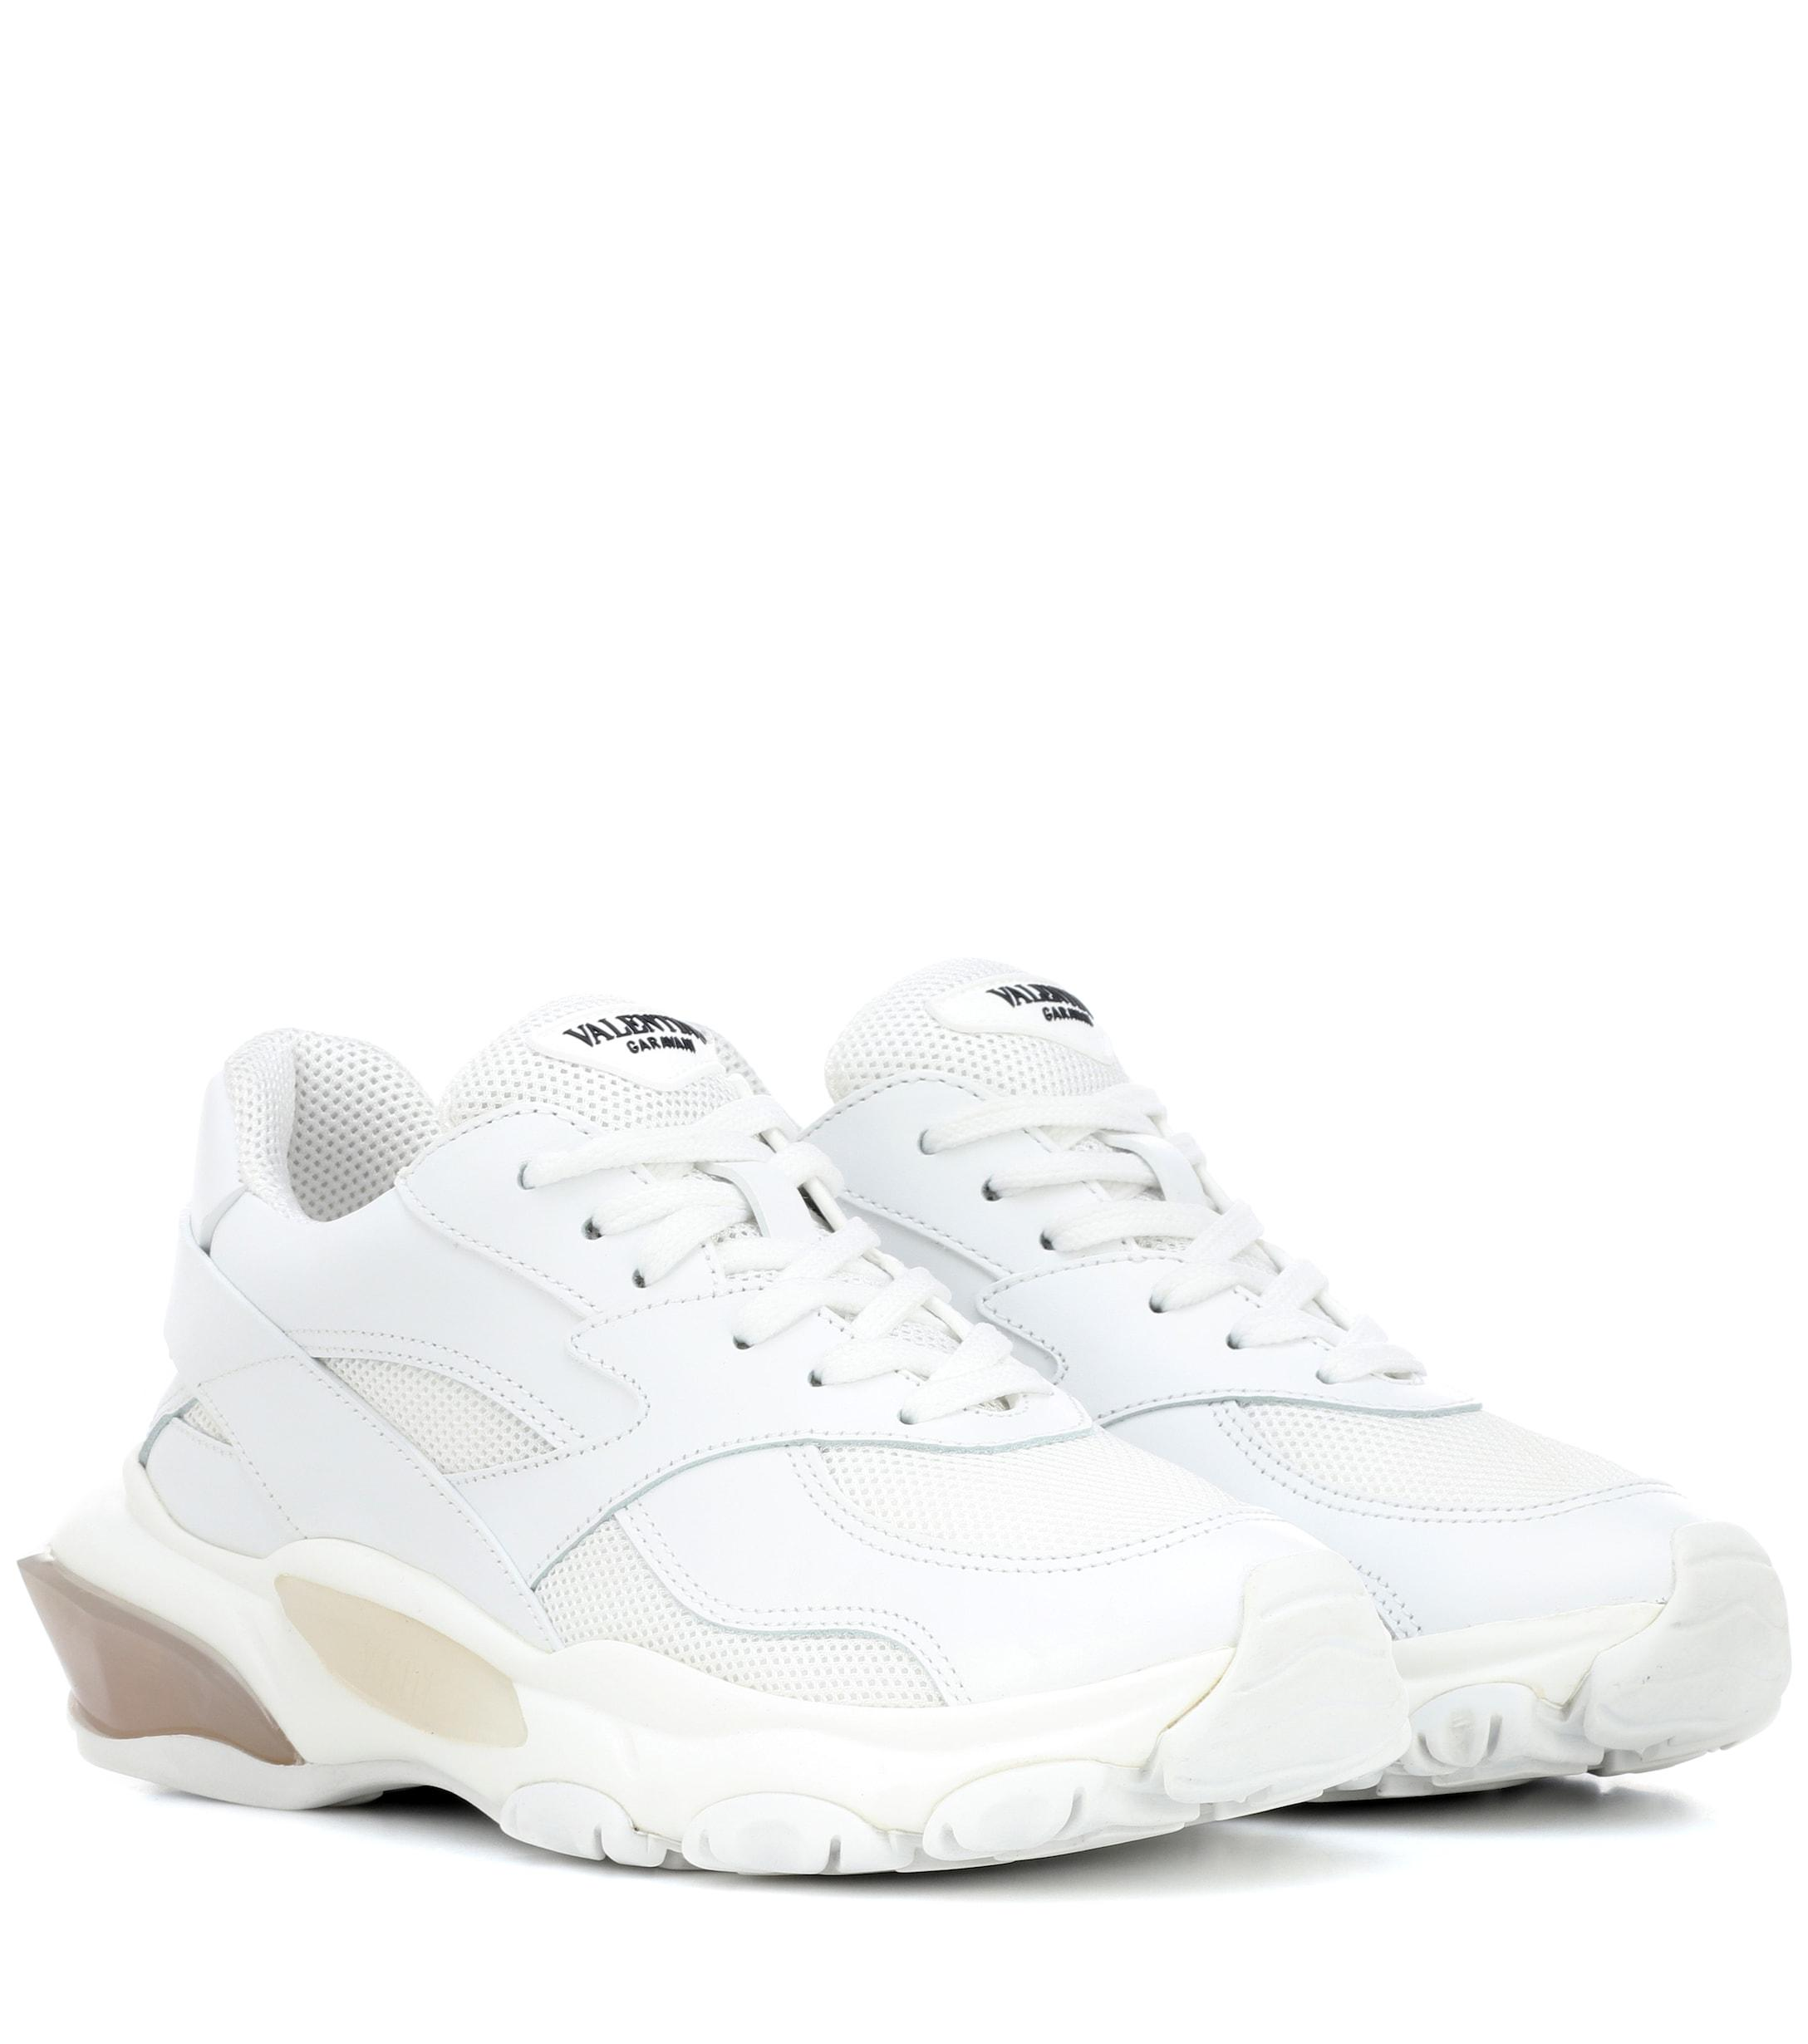 3aa27acd7534 Lyst - Valentino Garavani Bounce Sneakers in White - Save 1%